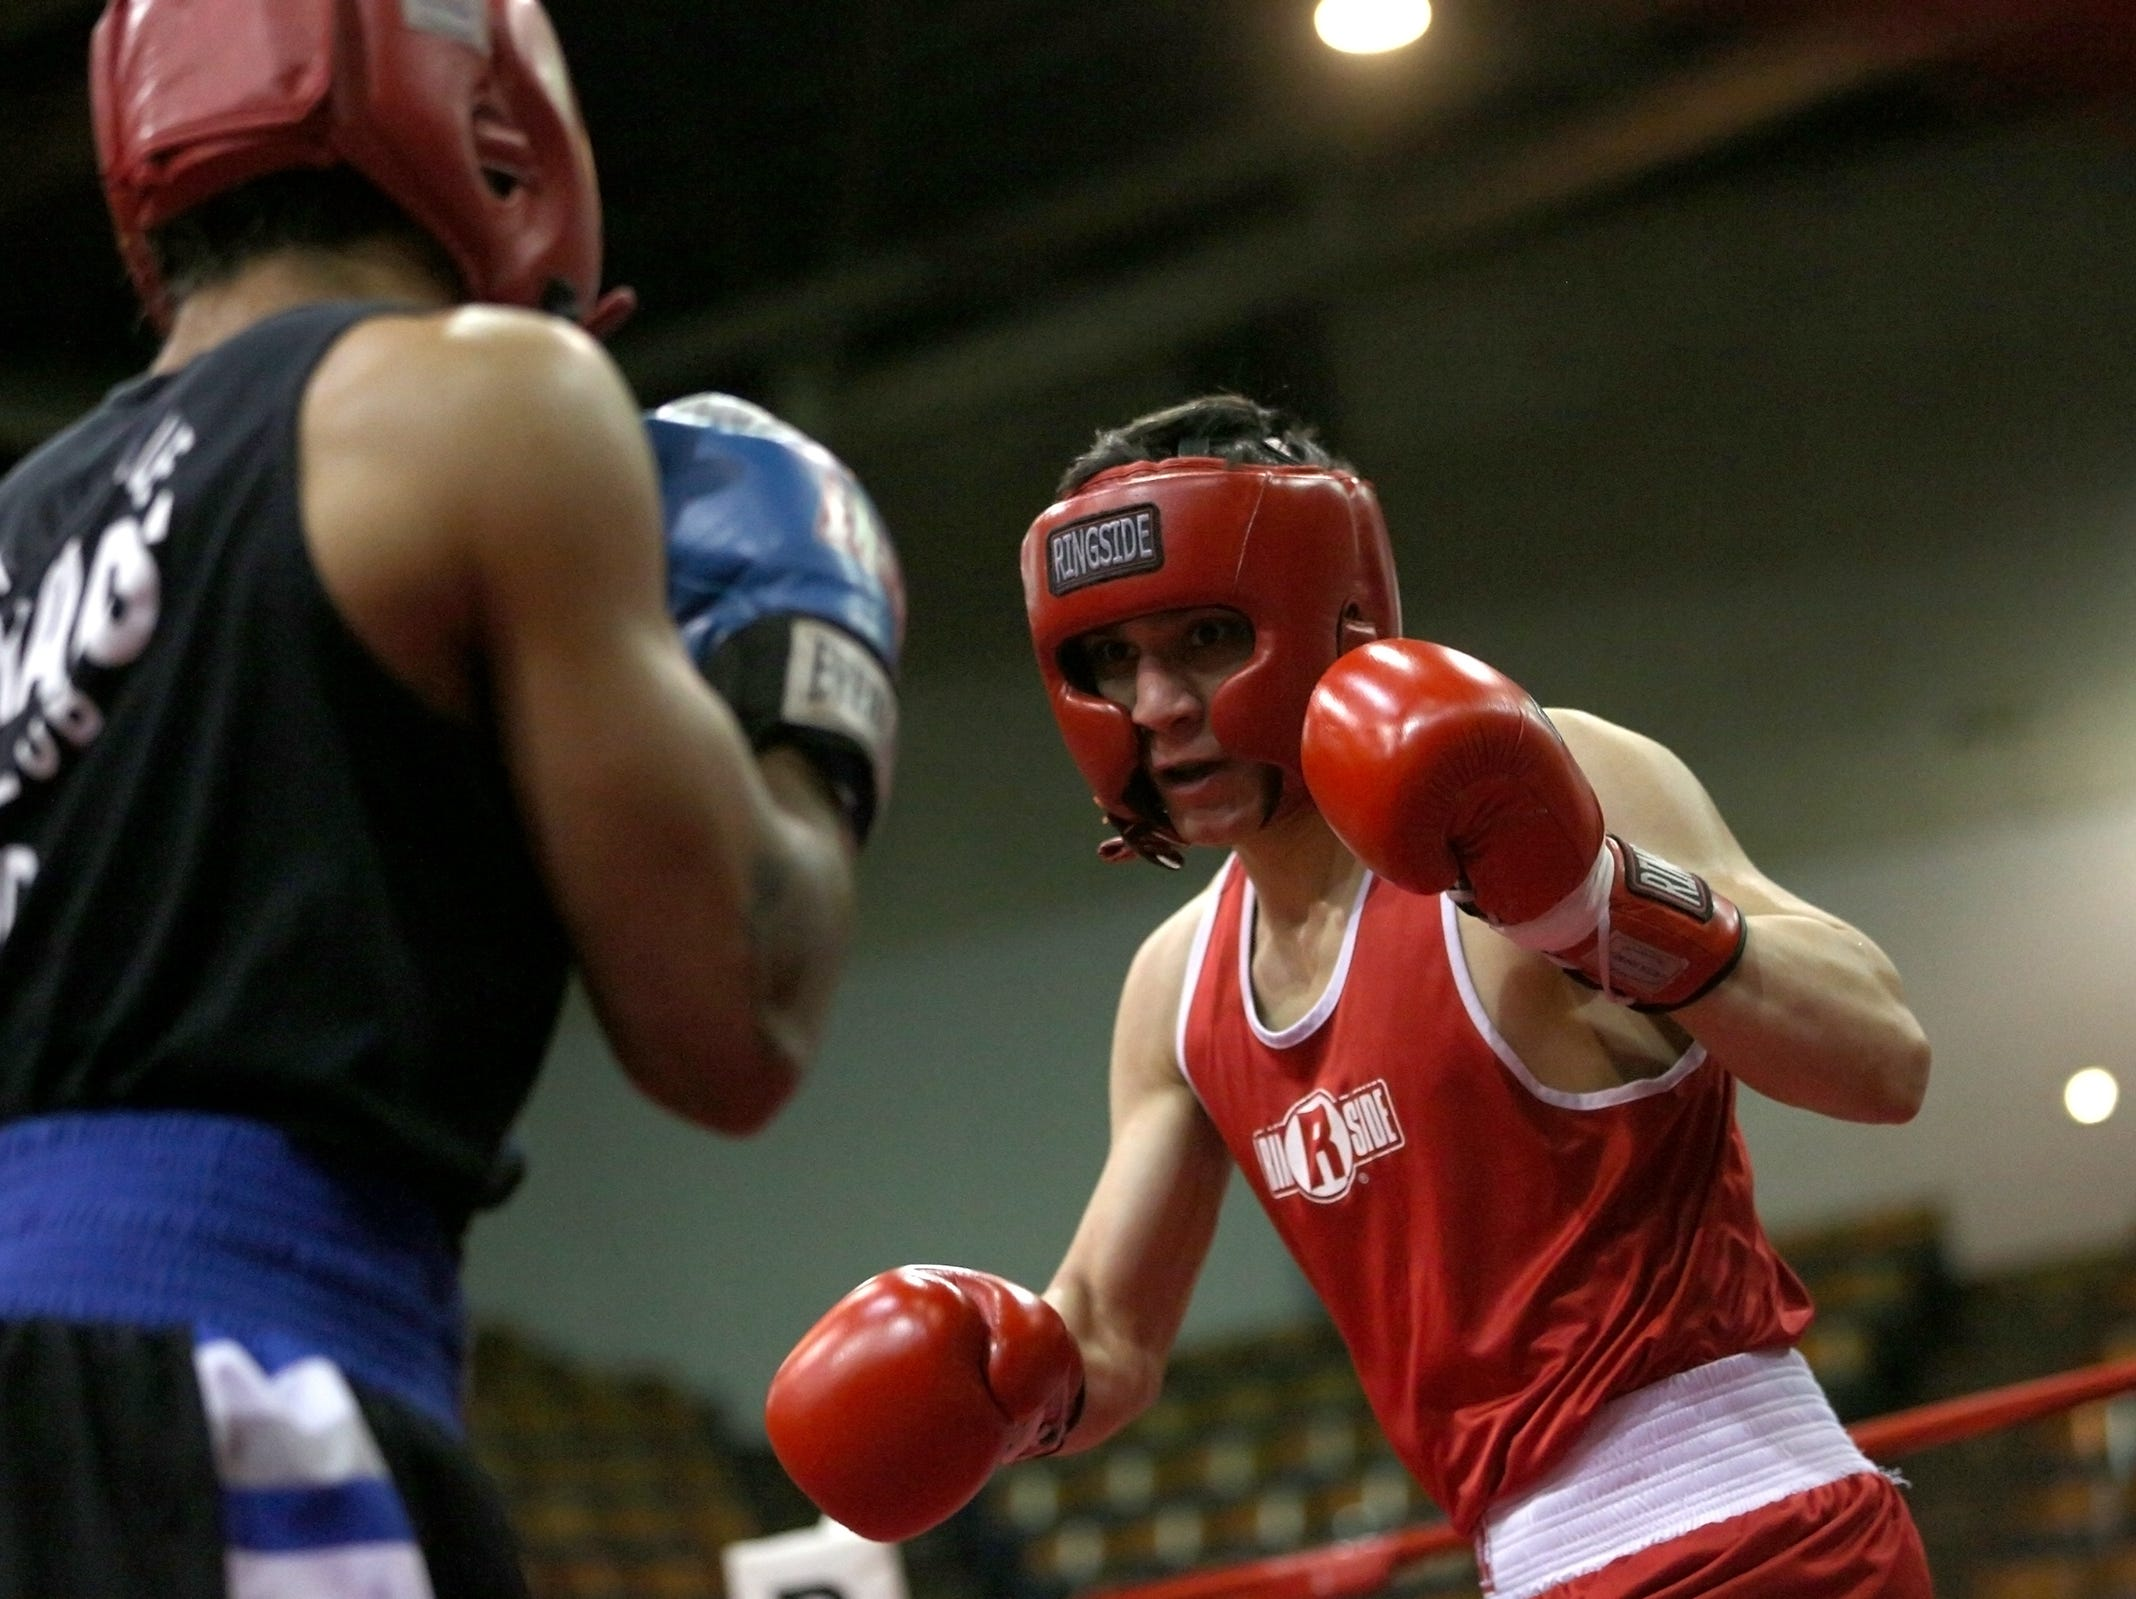 Daniel Schneegans of Hillsboro (right) takes on Bryan Sanchez of Portland during the Oregon Golden Gloves championship matches at the Salem Armory on Saturday, Feb. 2, 2019.